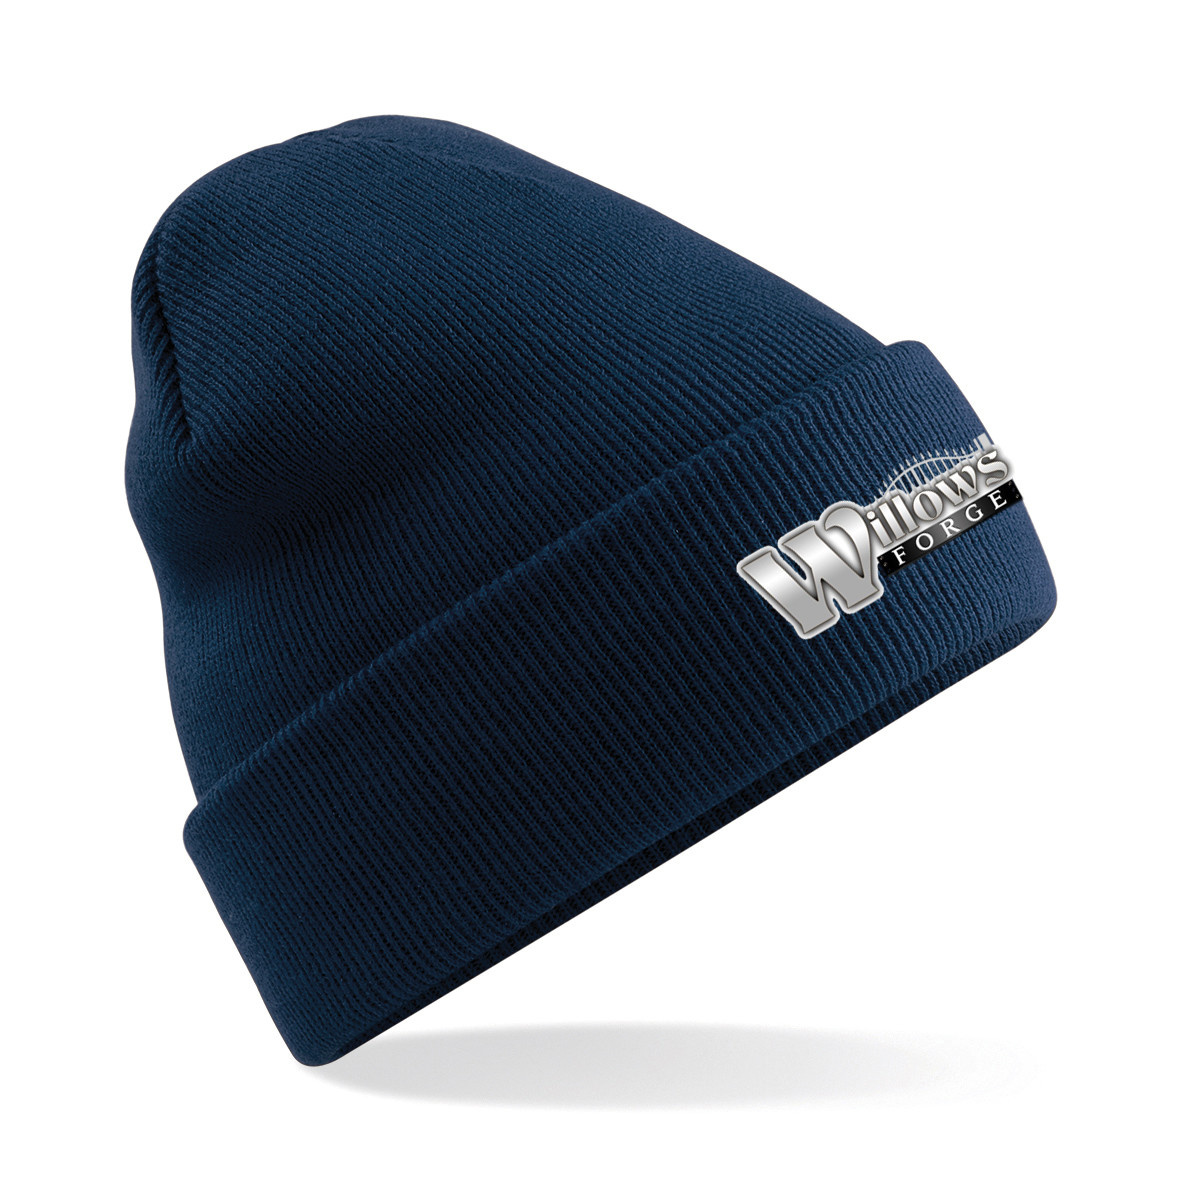 Premium Force Willows Forge Adults Turnover Beanie